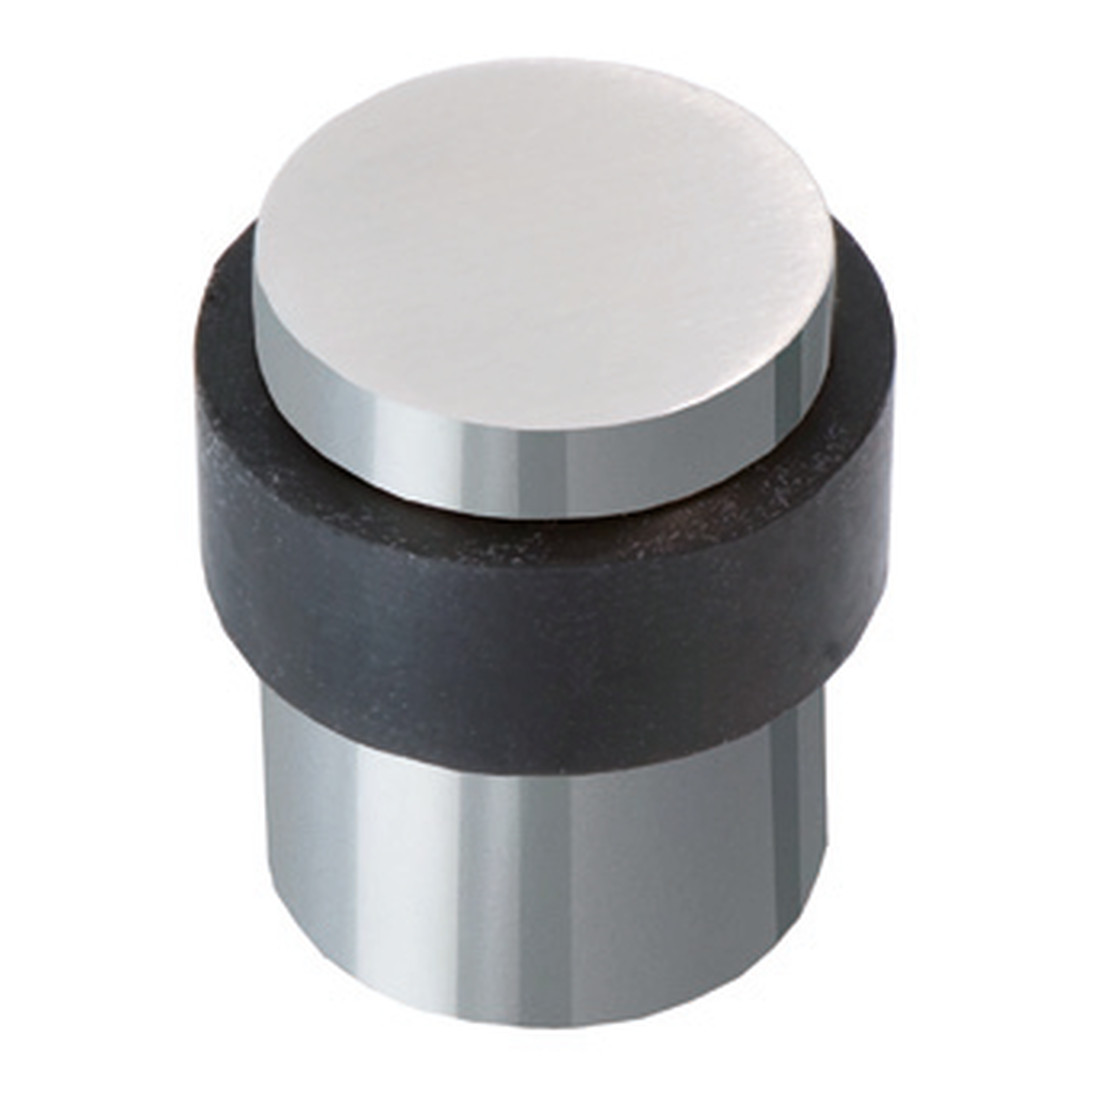 DOOR STOPPER POLISHED CHROME, FOR FLOOR MOUNTING, 29MM, UNIVERSAL SCREW